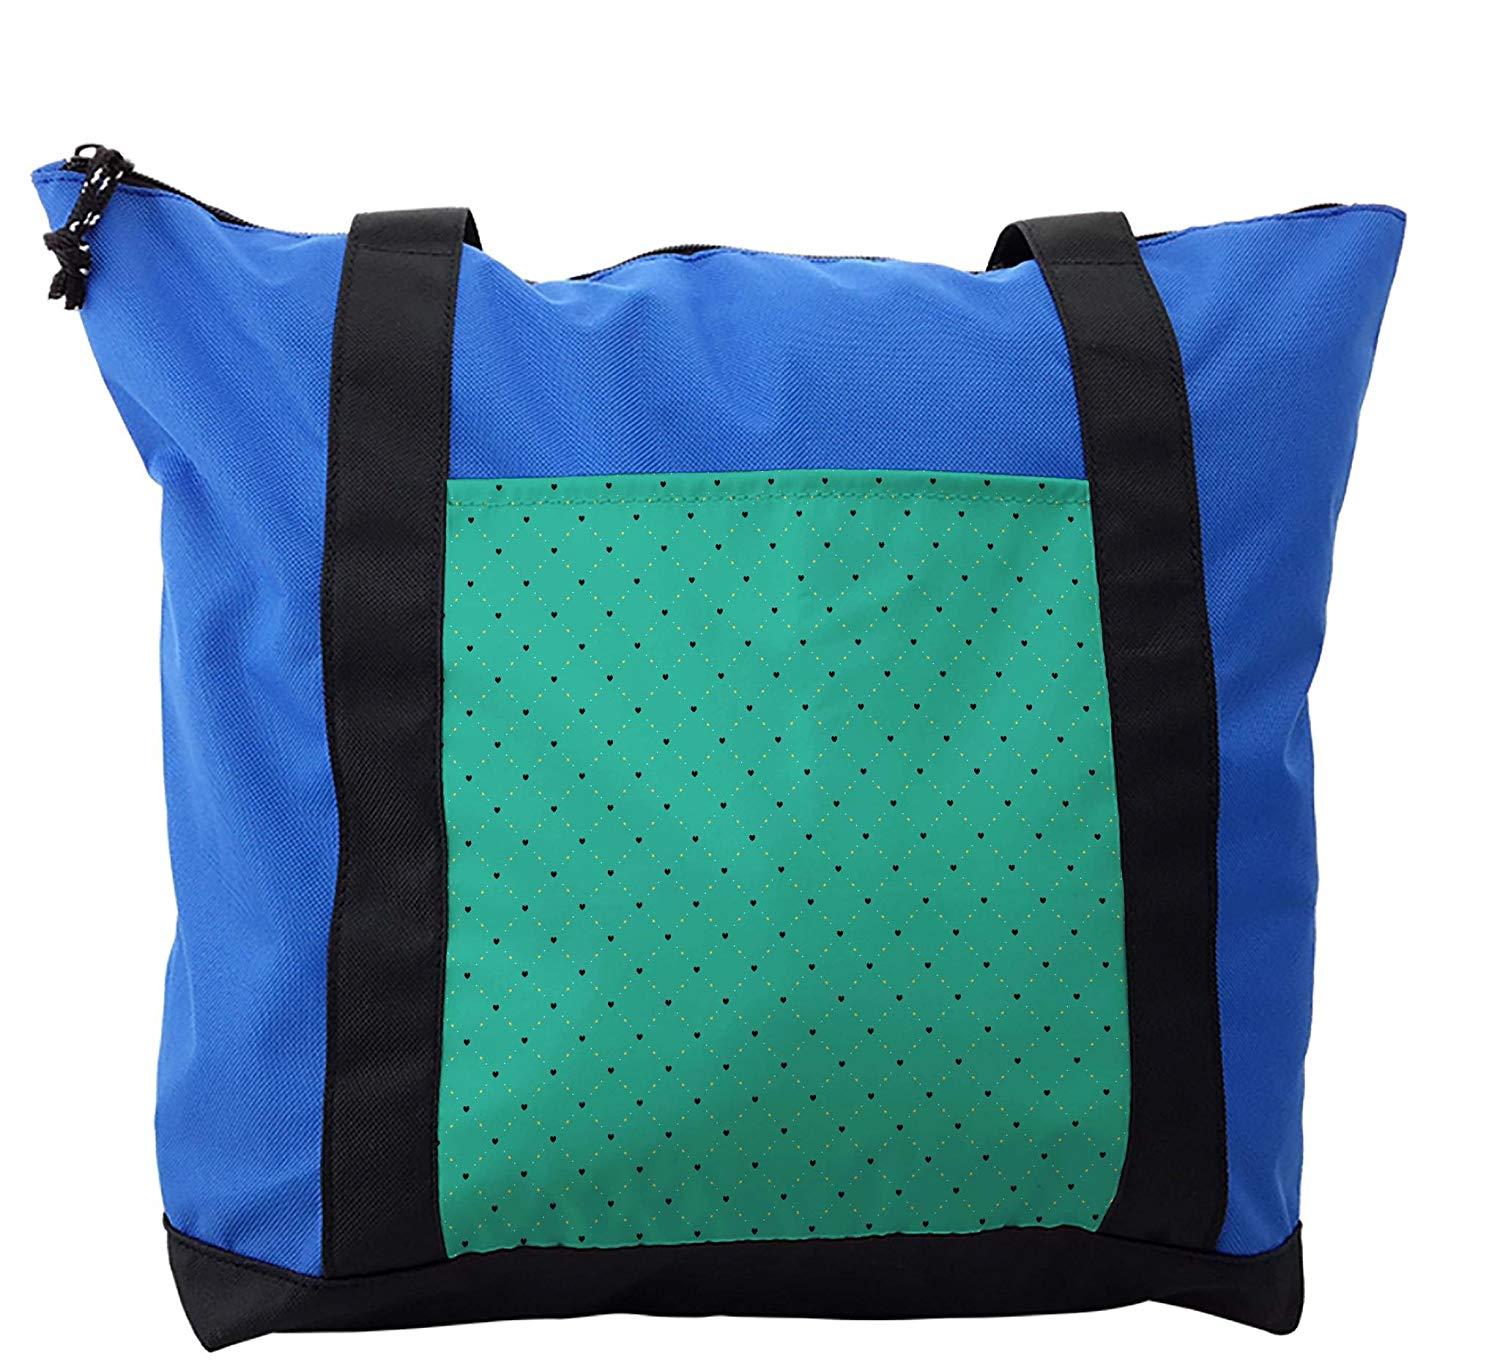 Lunarable Emerald Shoulder Bag, Little Hearts Checkered, Durable with Zipper